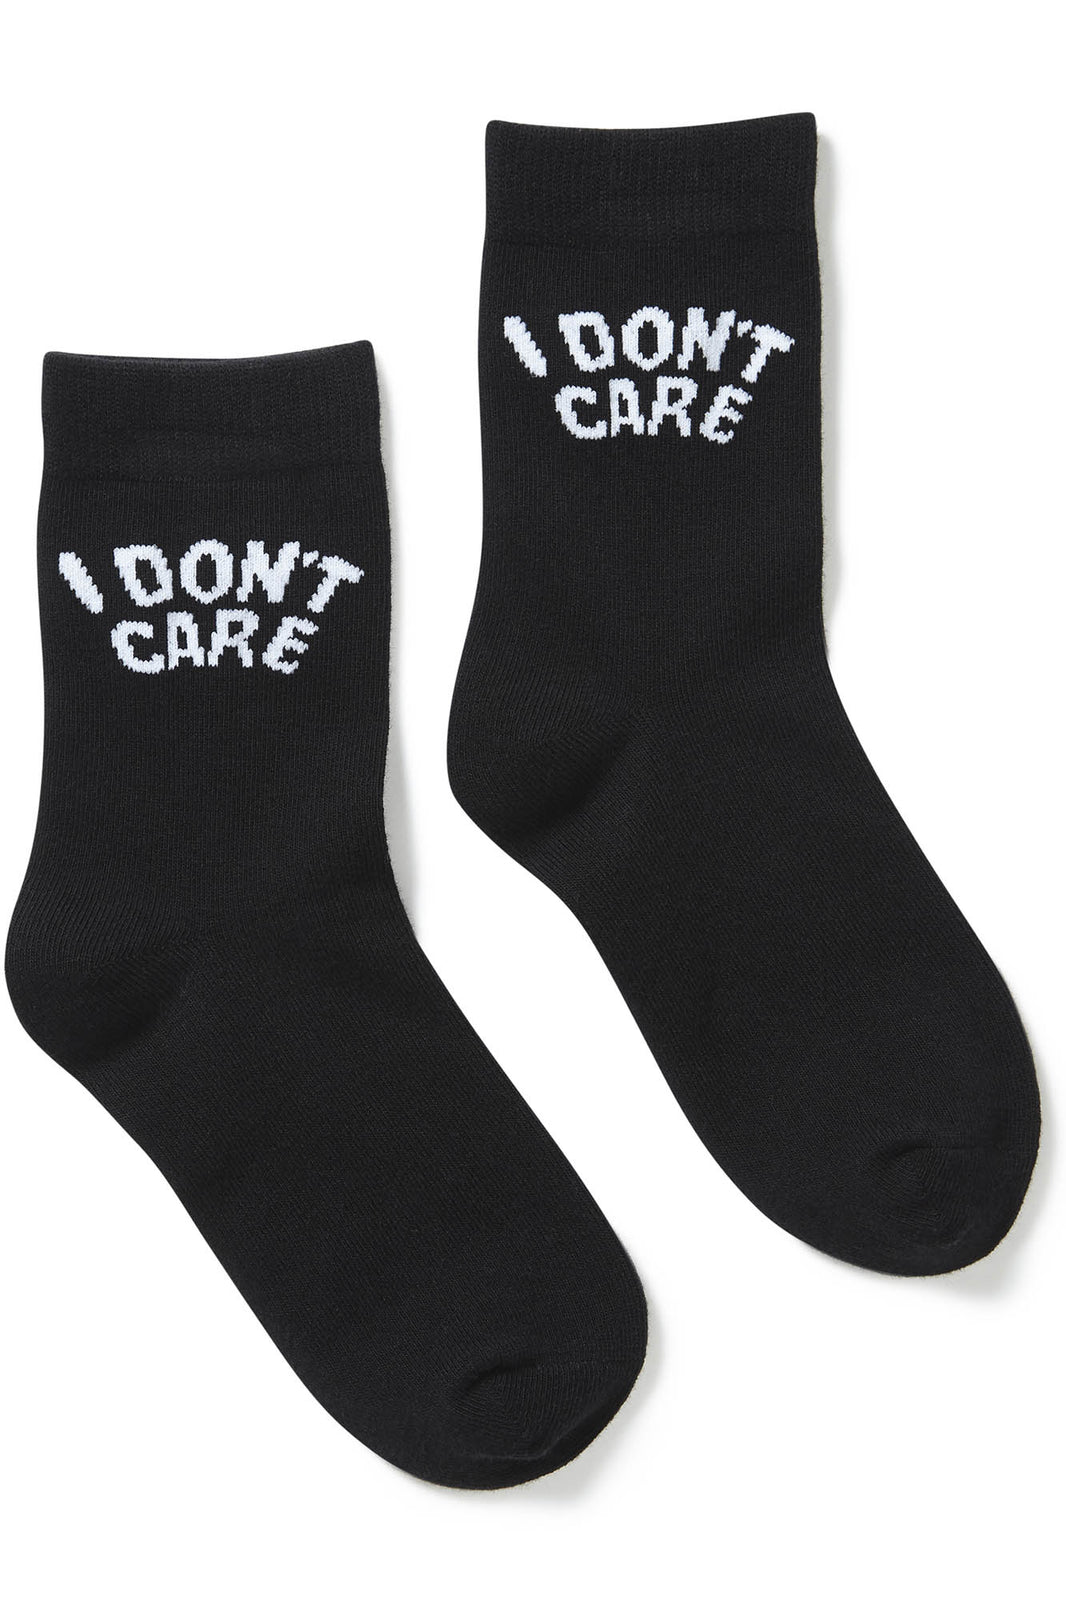 Don't Care Ankle Socks [B]